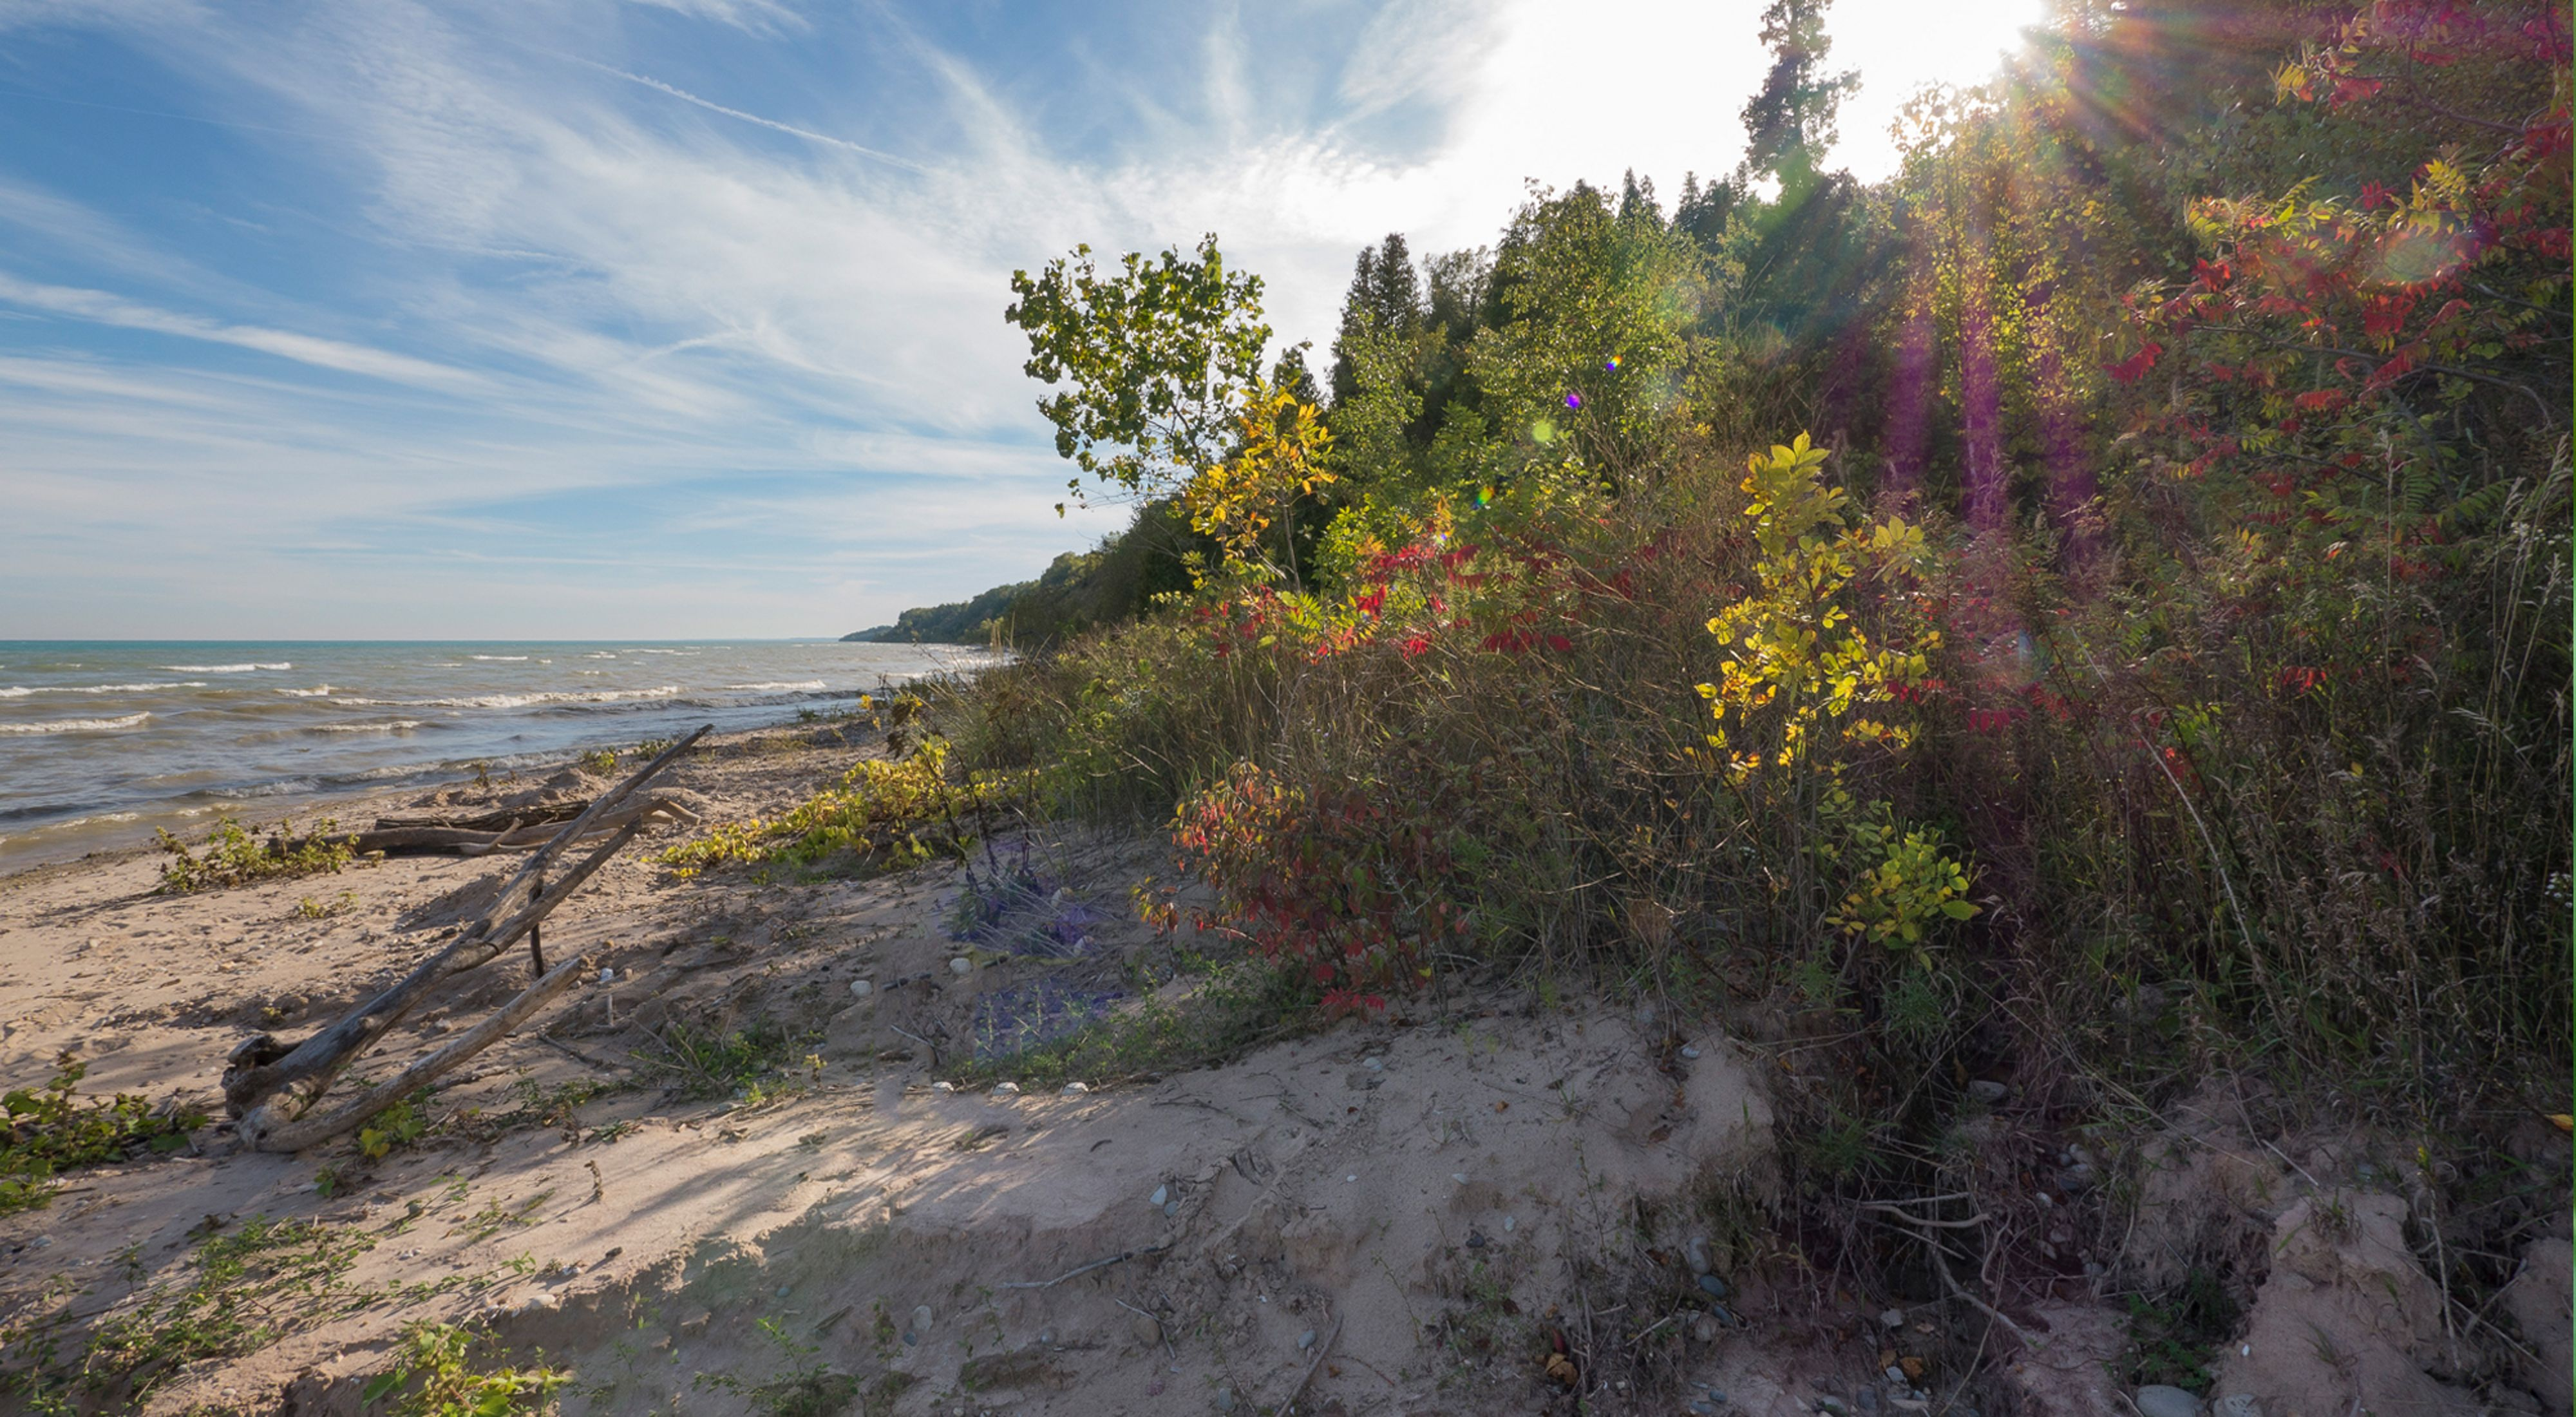 A sunbeam breaks through the clouds in a blue sky highlighting the vegetation along the sandy shore of Lake Michigan.